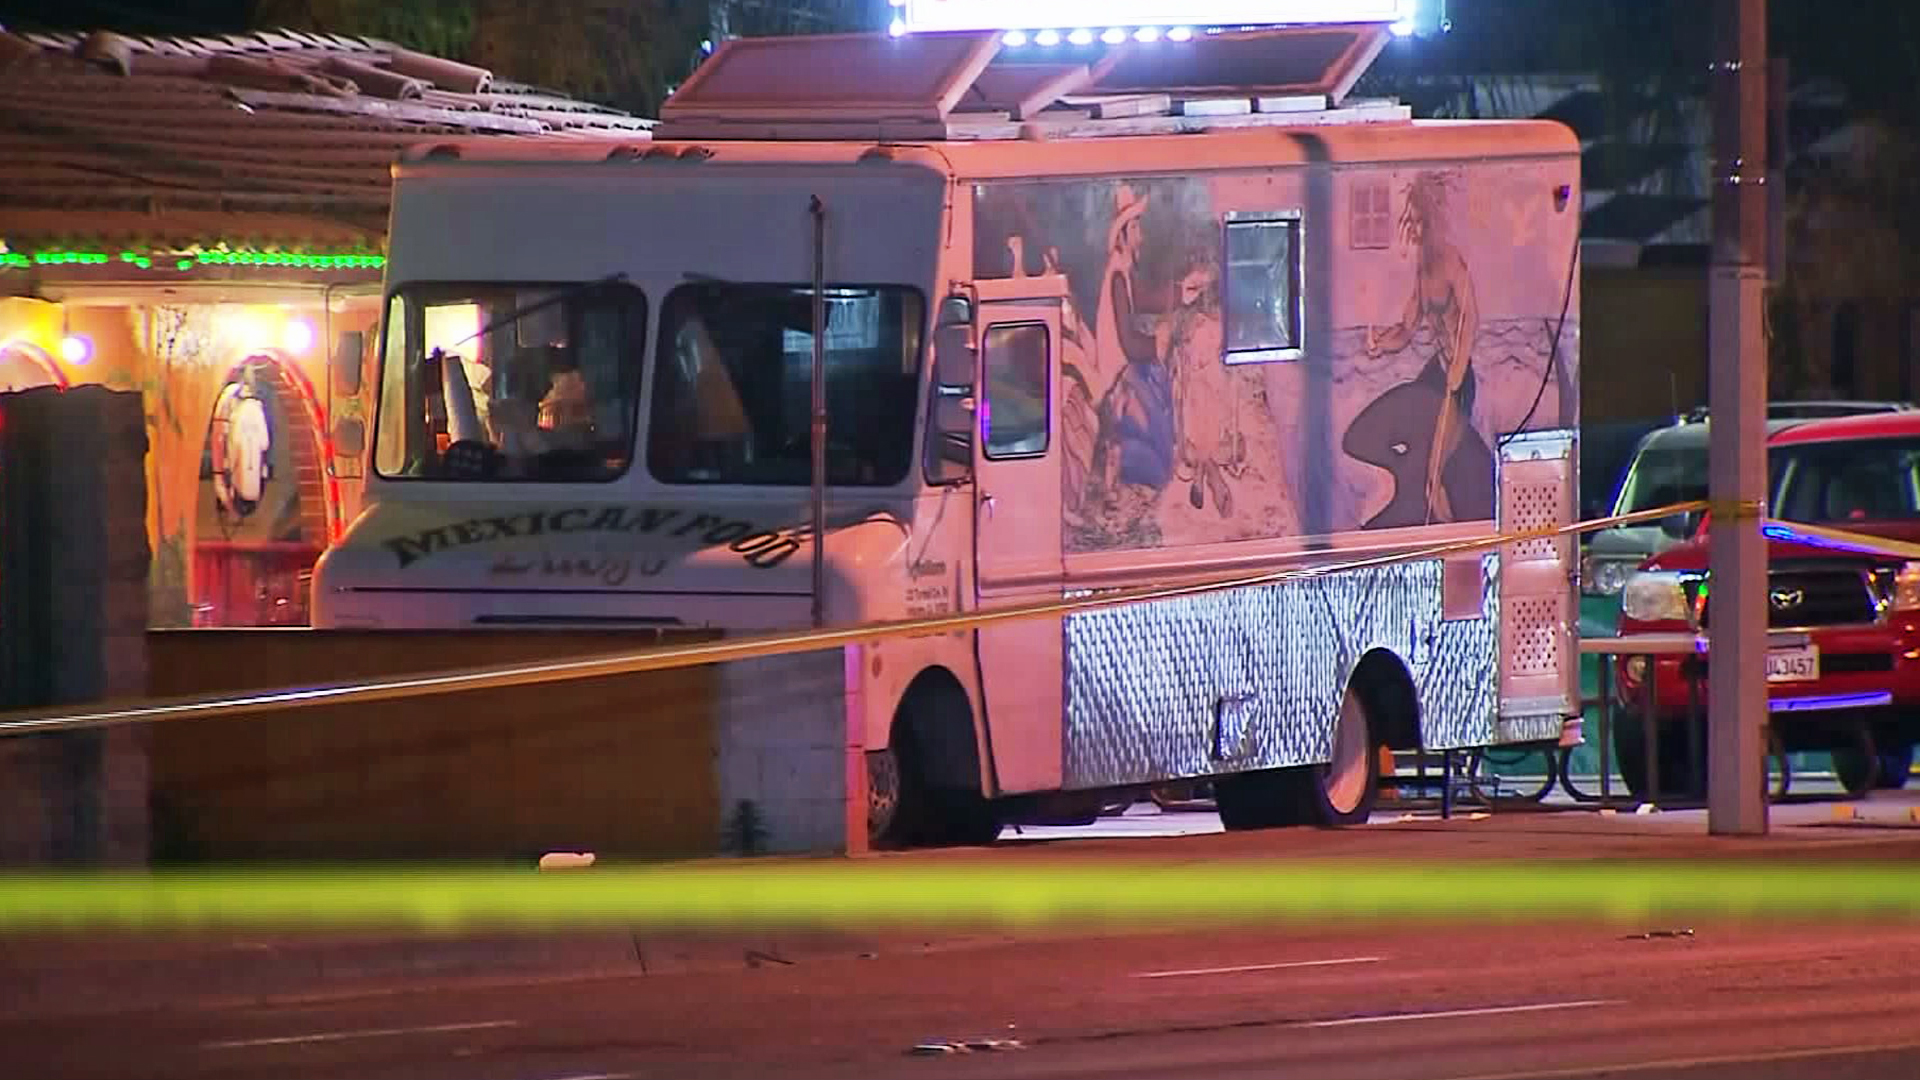 A taco truck is seen in the parking lot where a fatal shootout took place in Bassett on April 19, 2016. (Credit: KTLA)